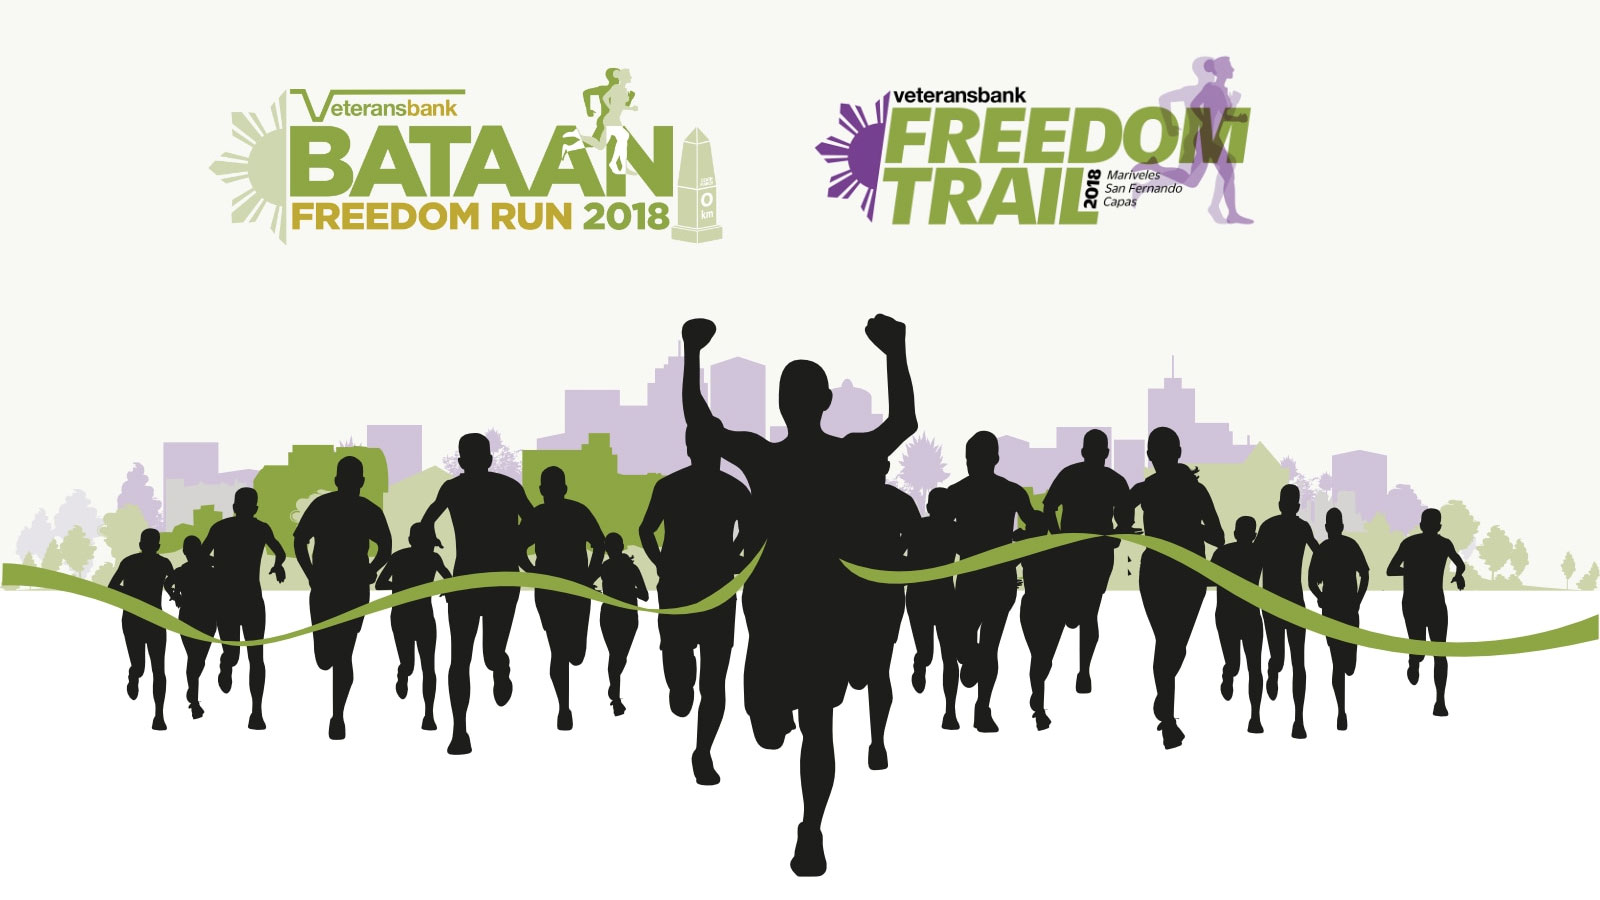 In commemoration of the Bataan Death March